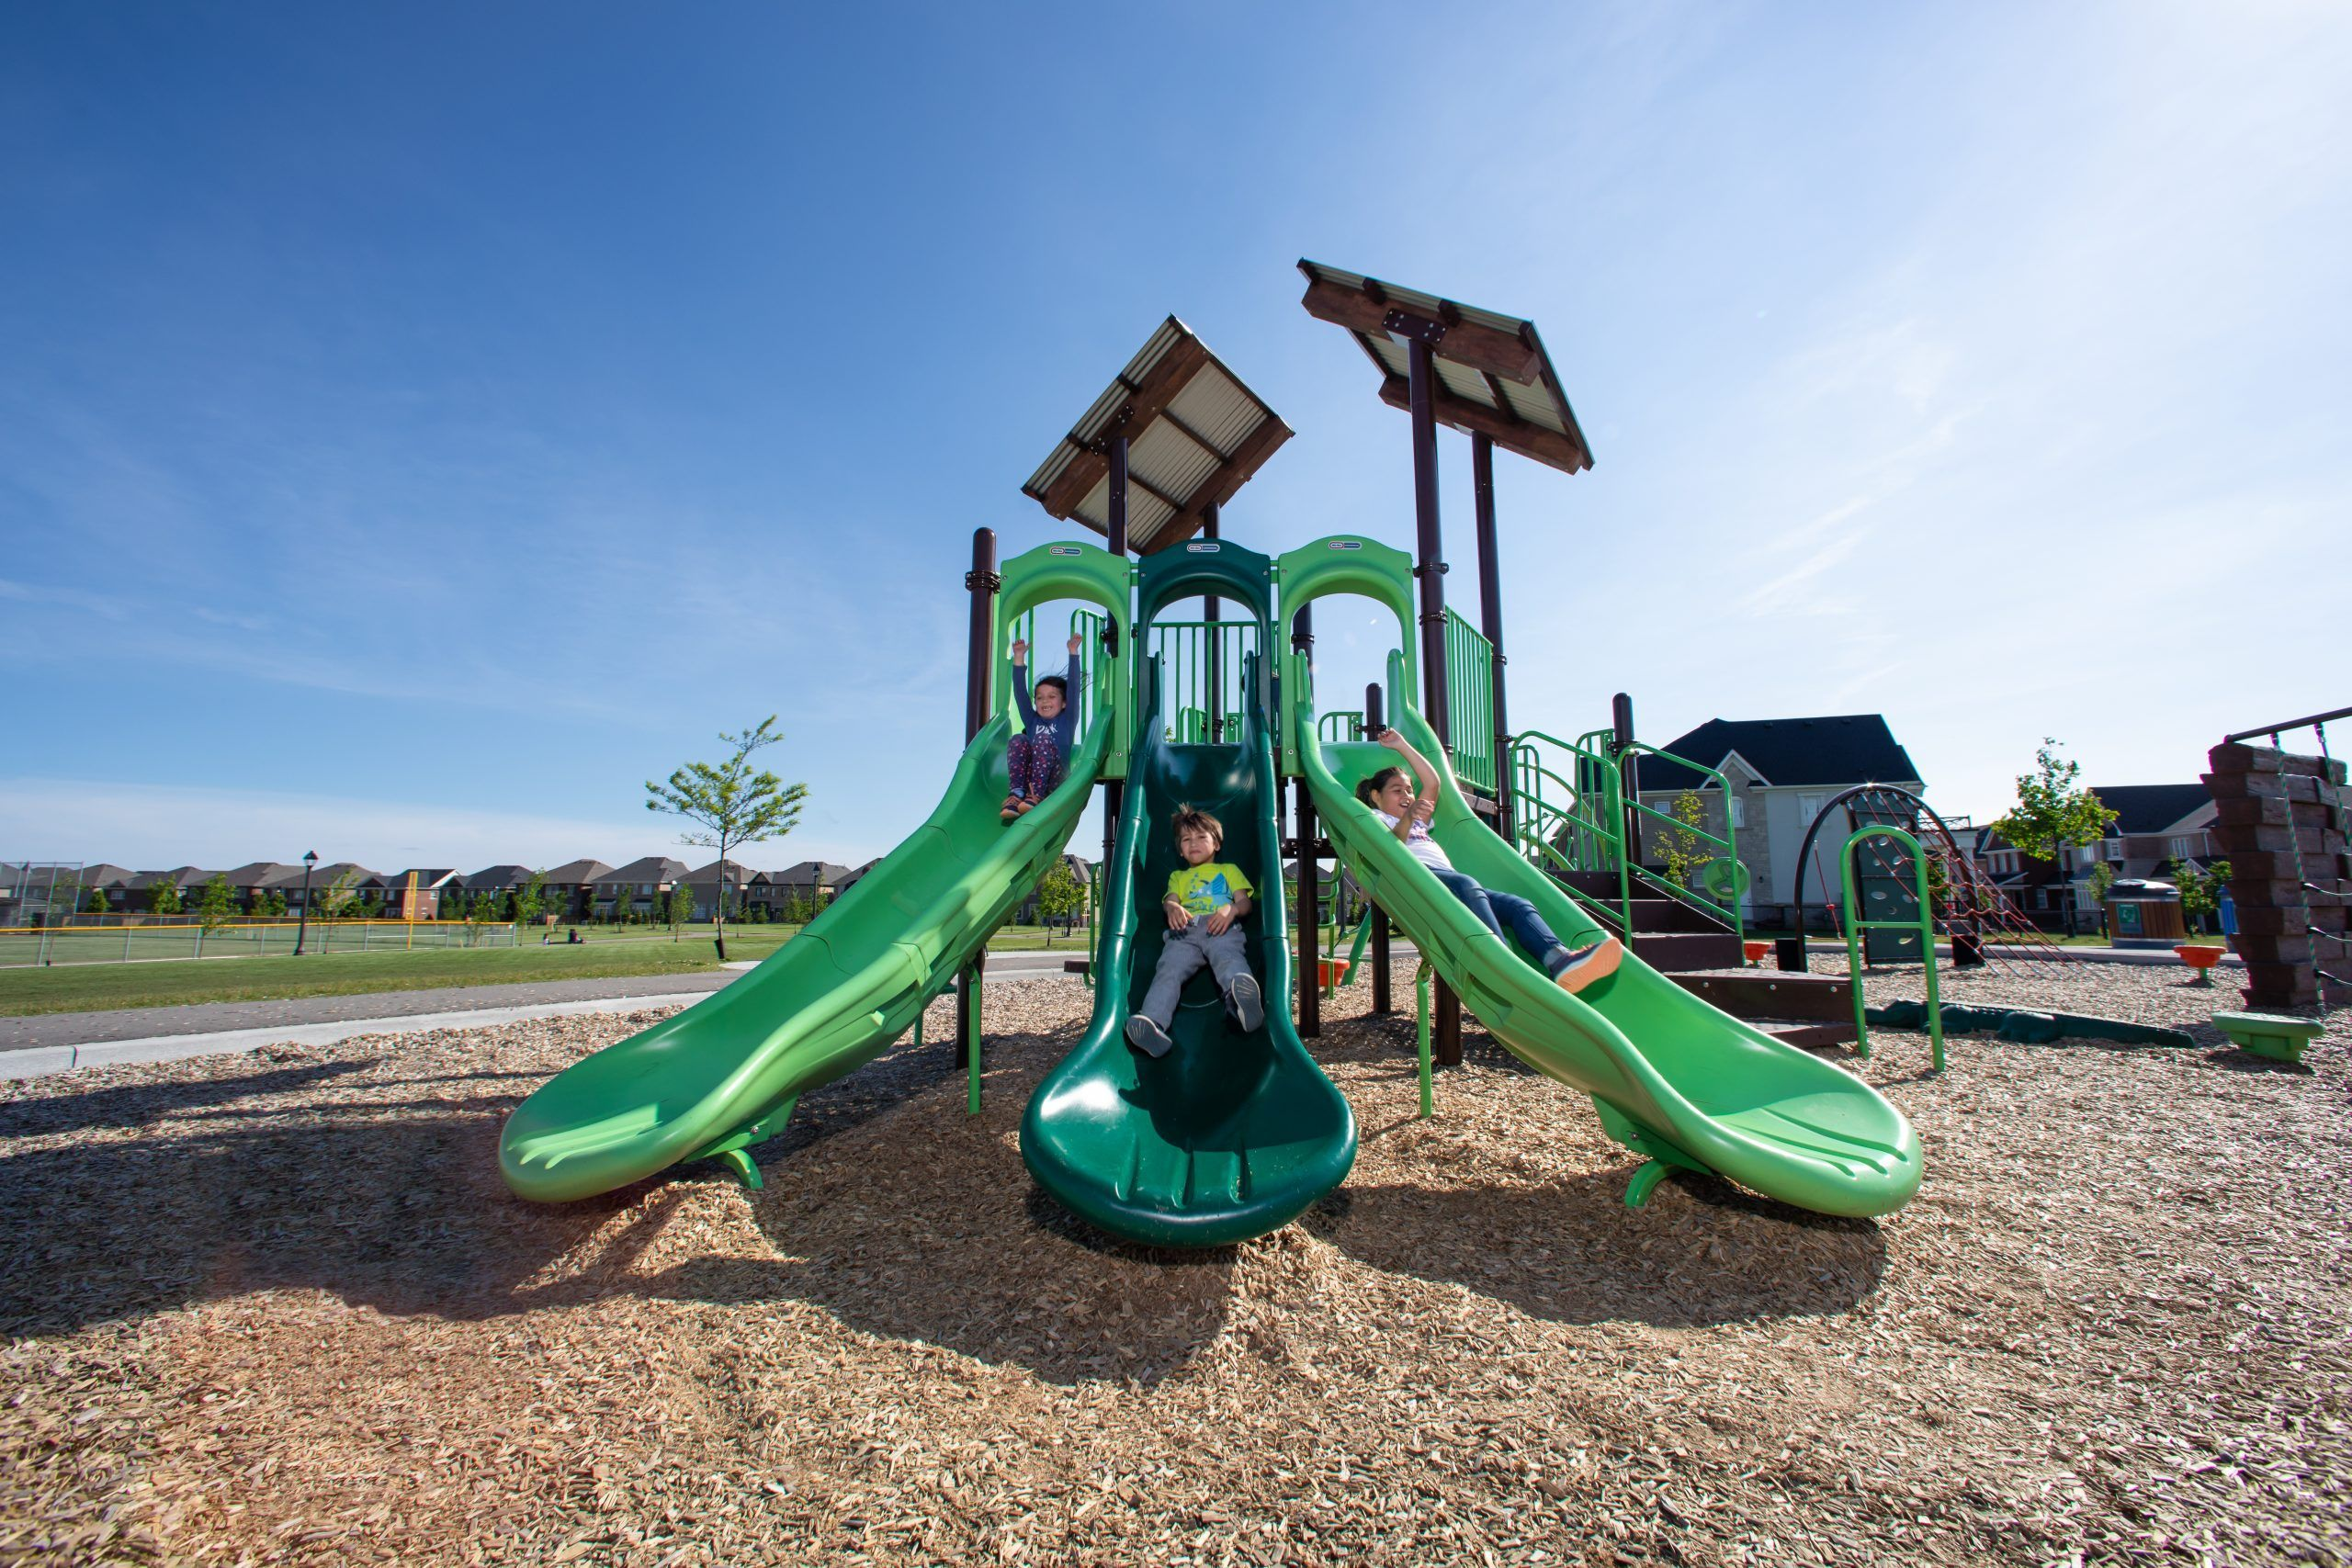 Playground slides with roofs